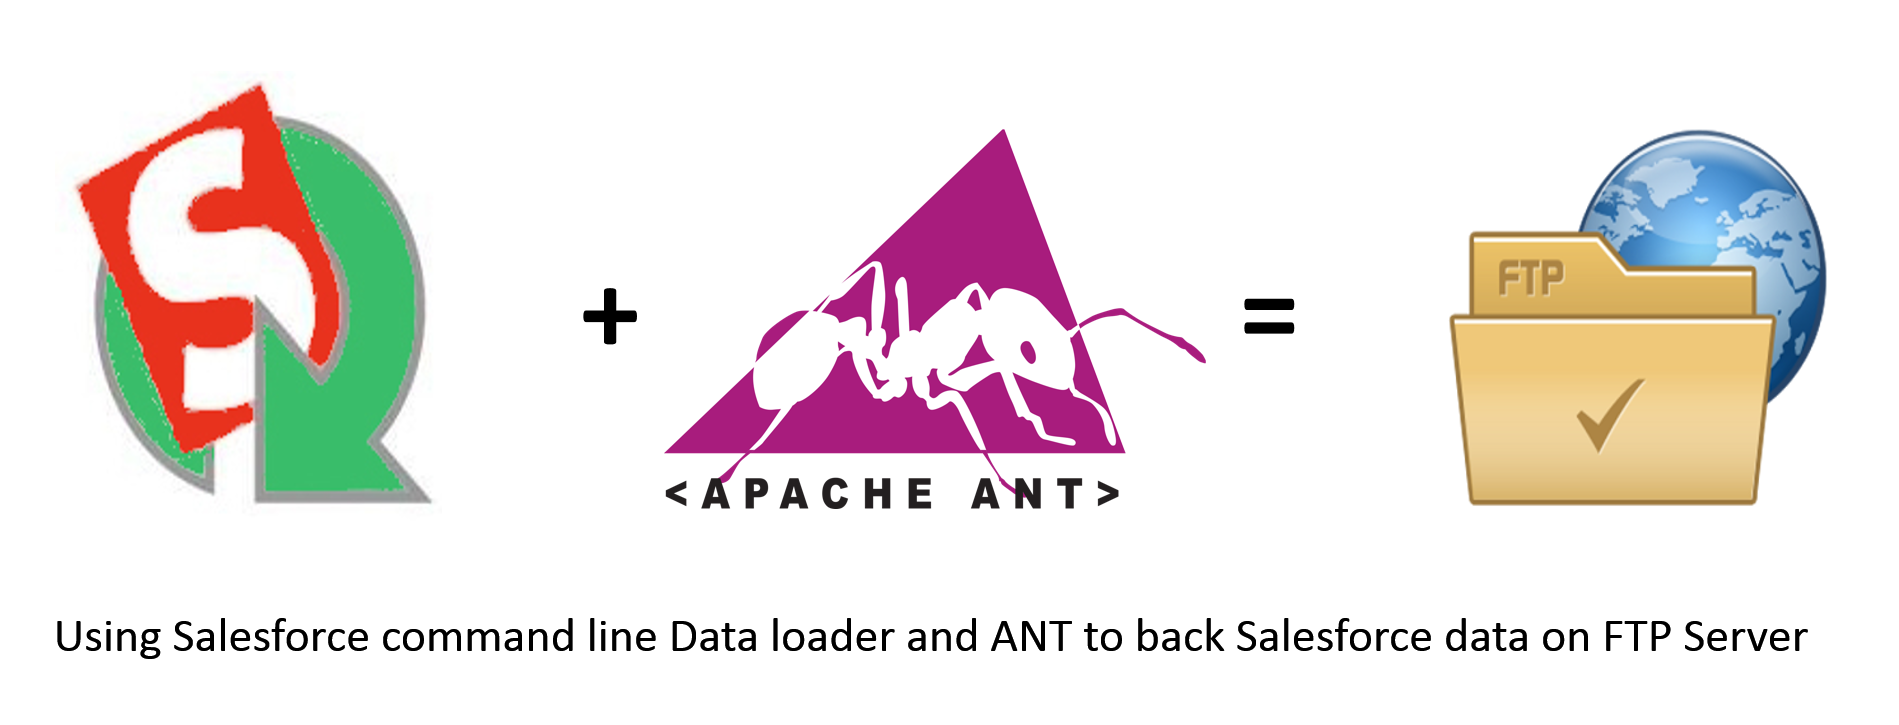 Using Dataloader and ANT to backup Salesforce data on FTP or